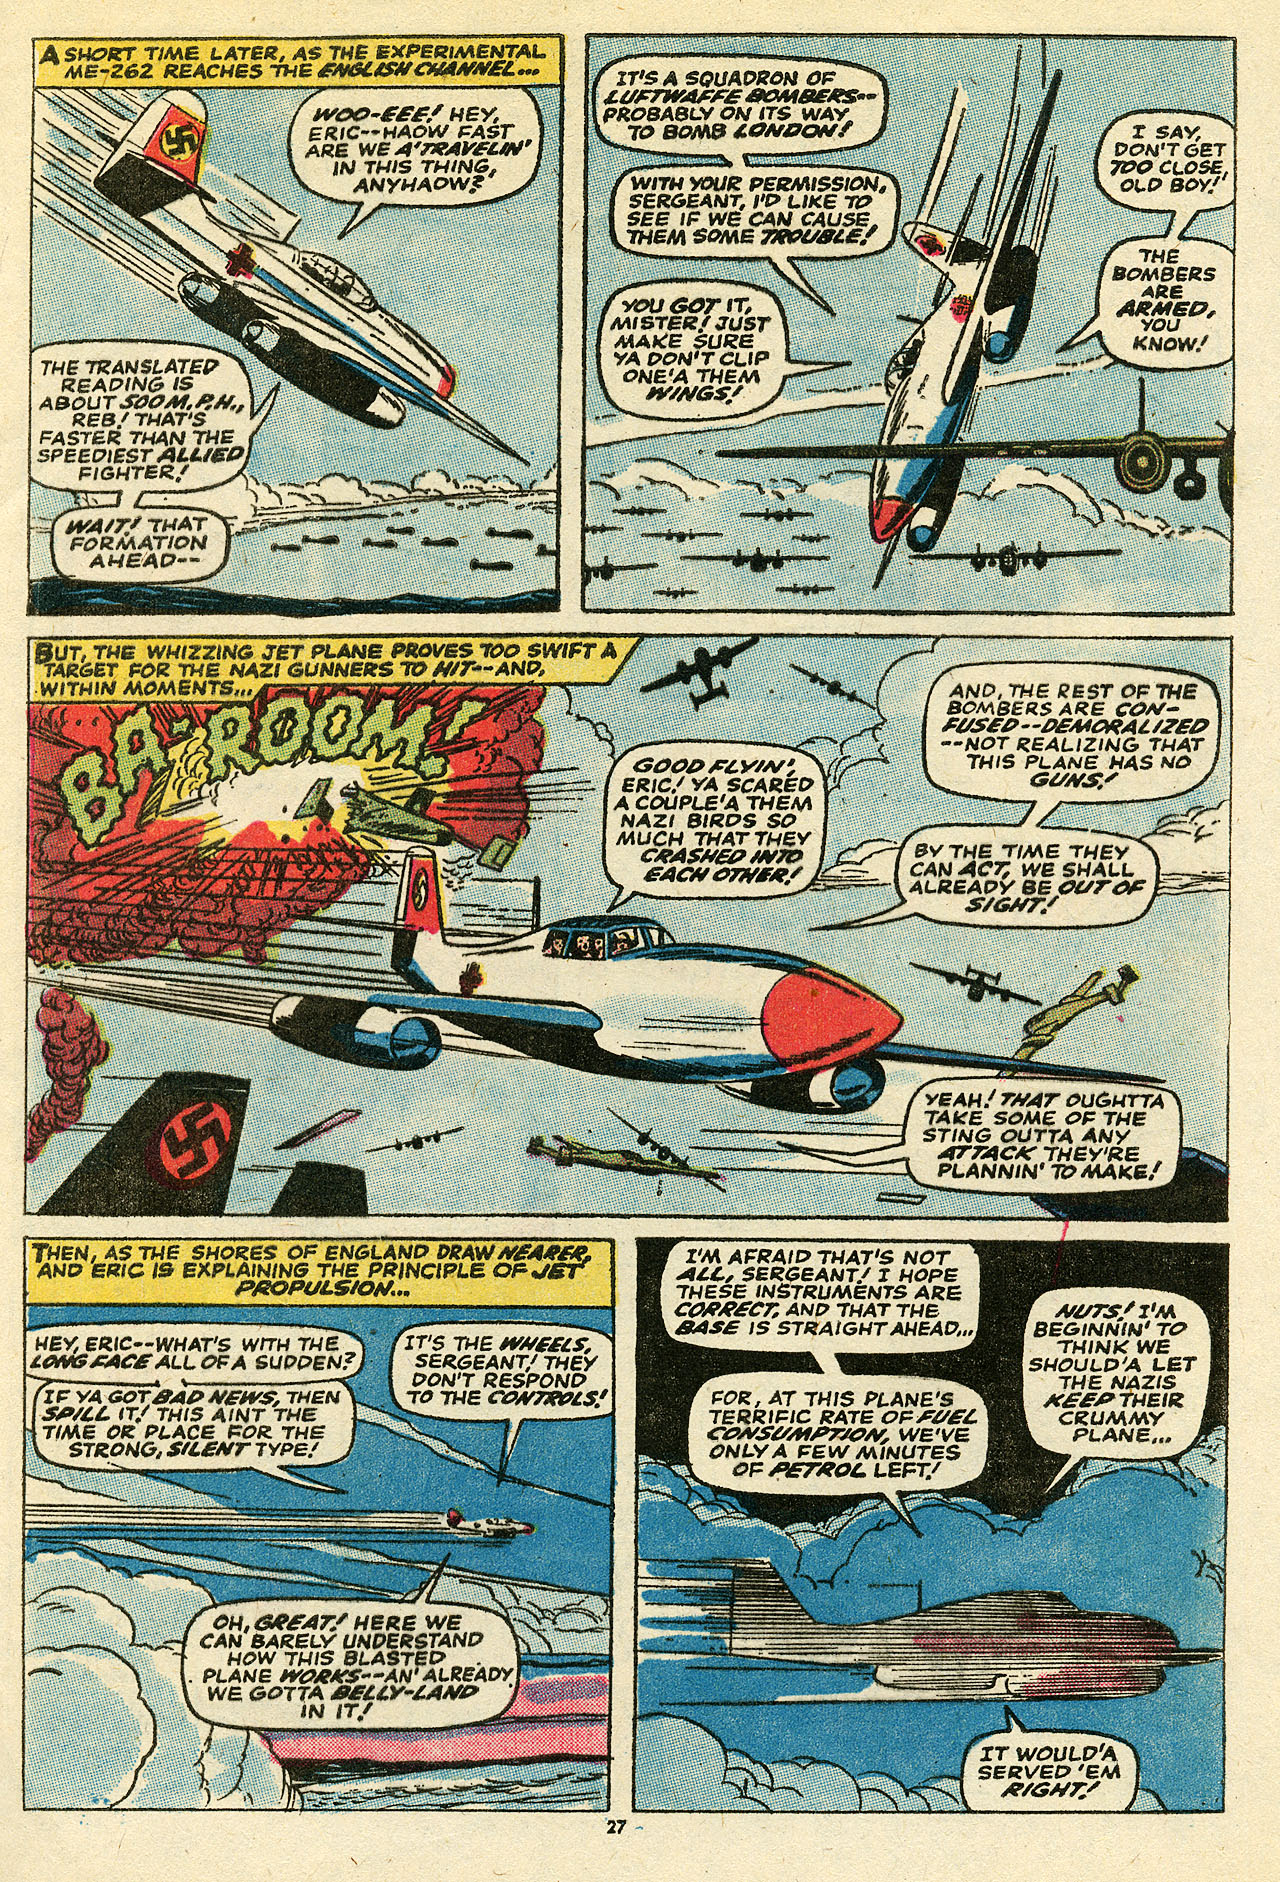 Read online Sgt. Fury comic -  Issue #111 - 29